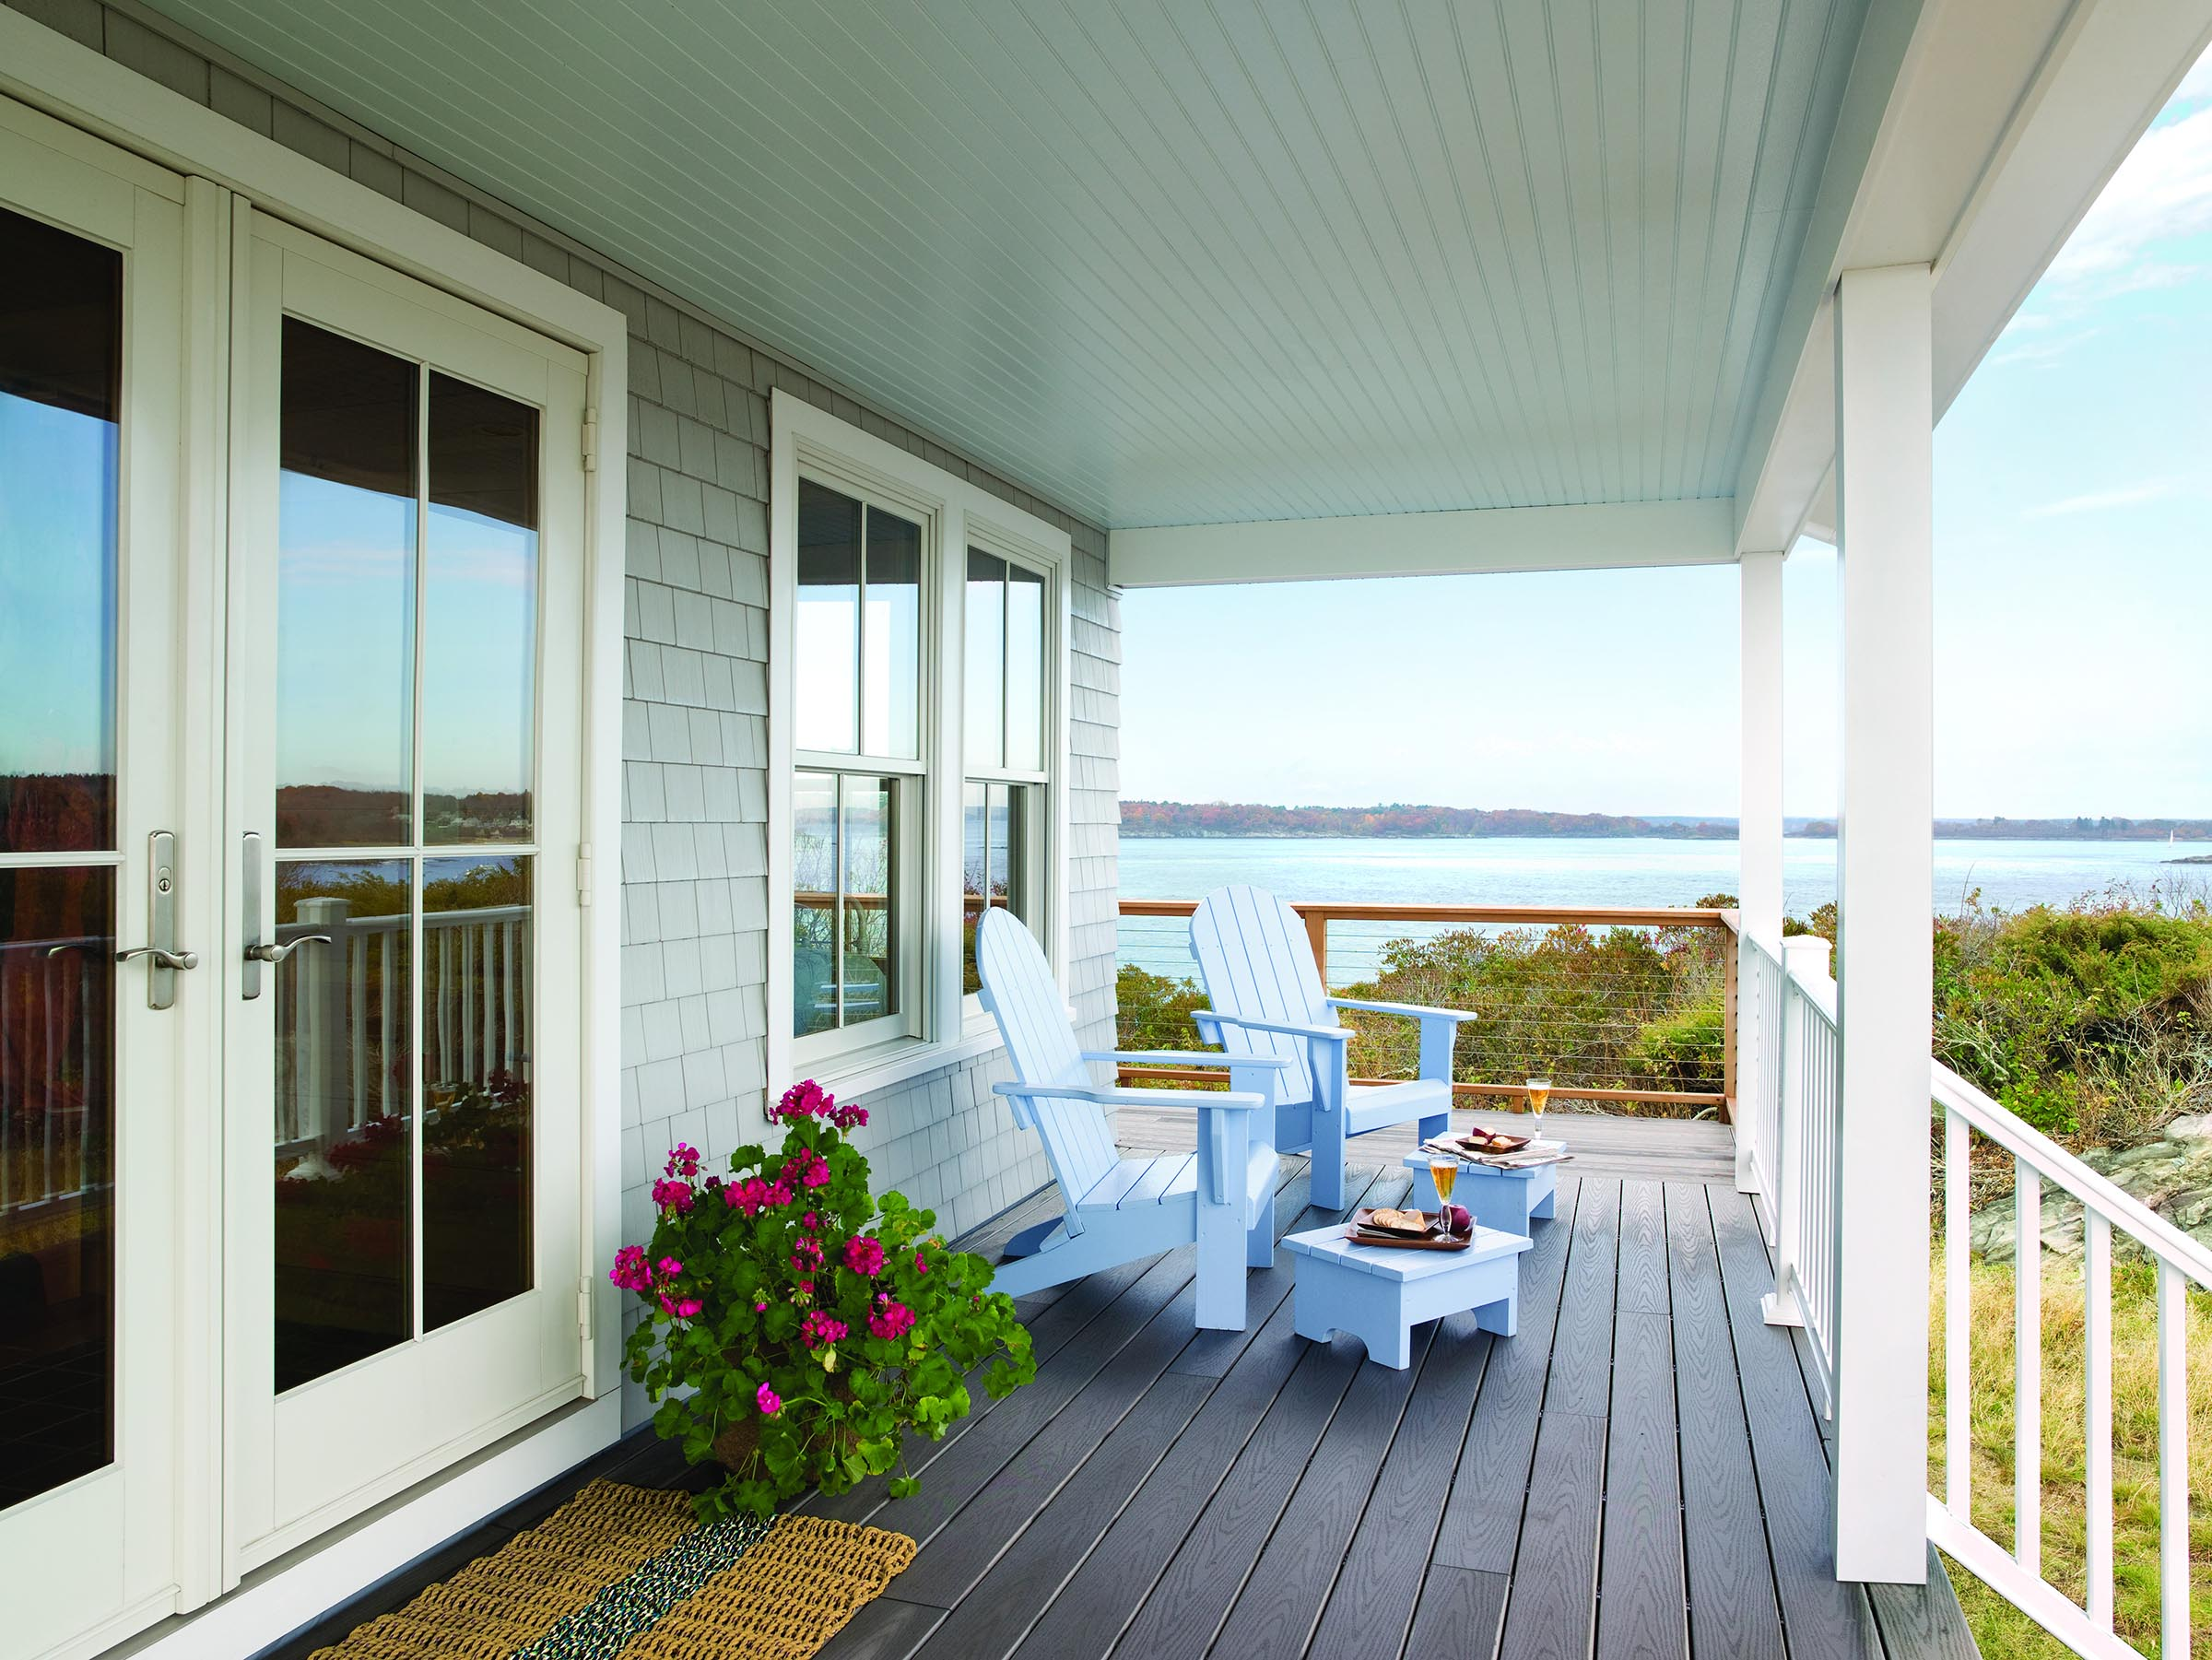 A-Series Double-Hung Windows and Hinged Patio Door